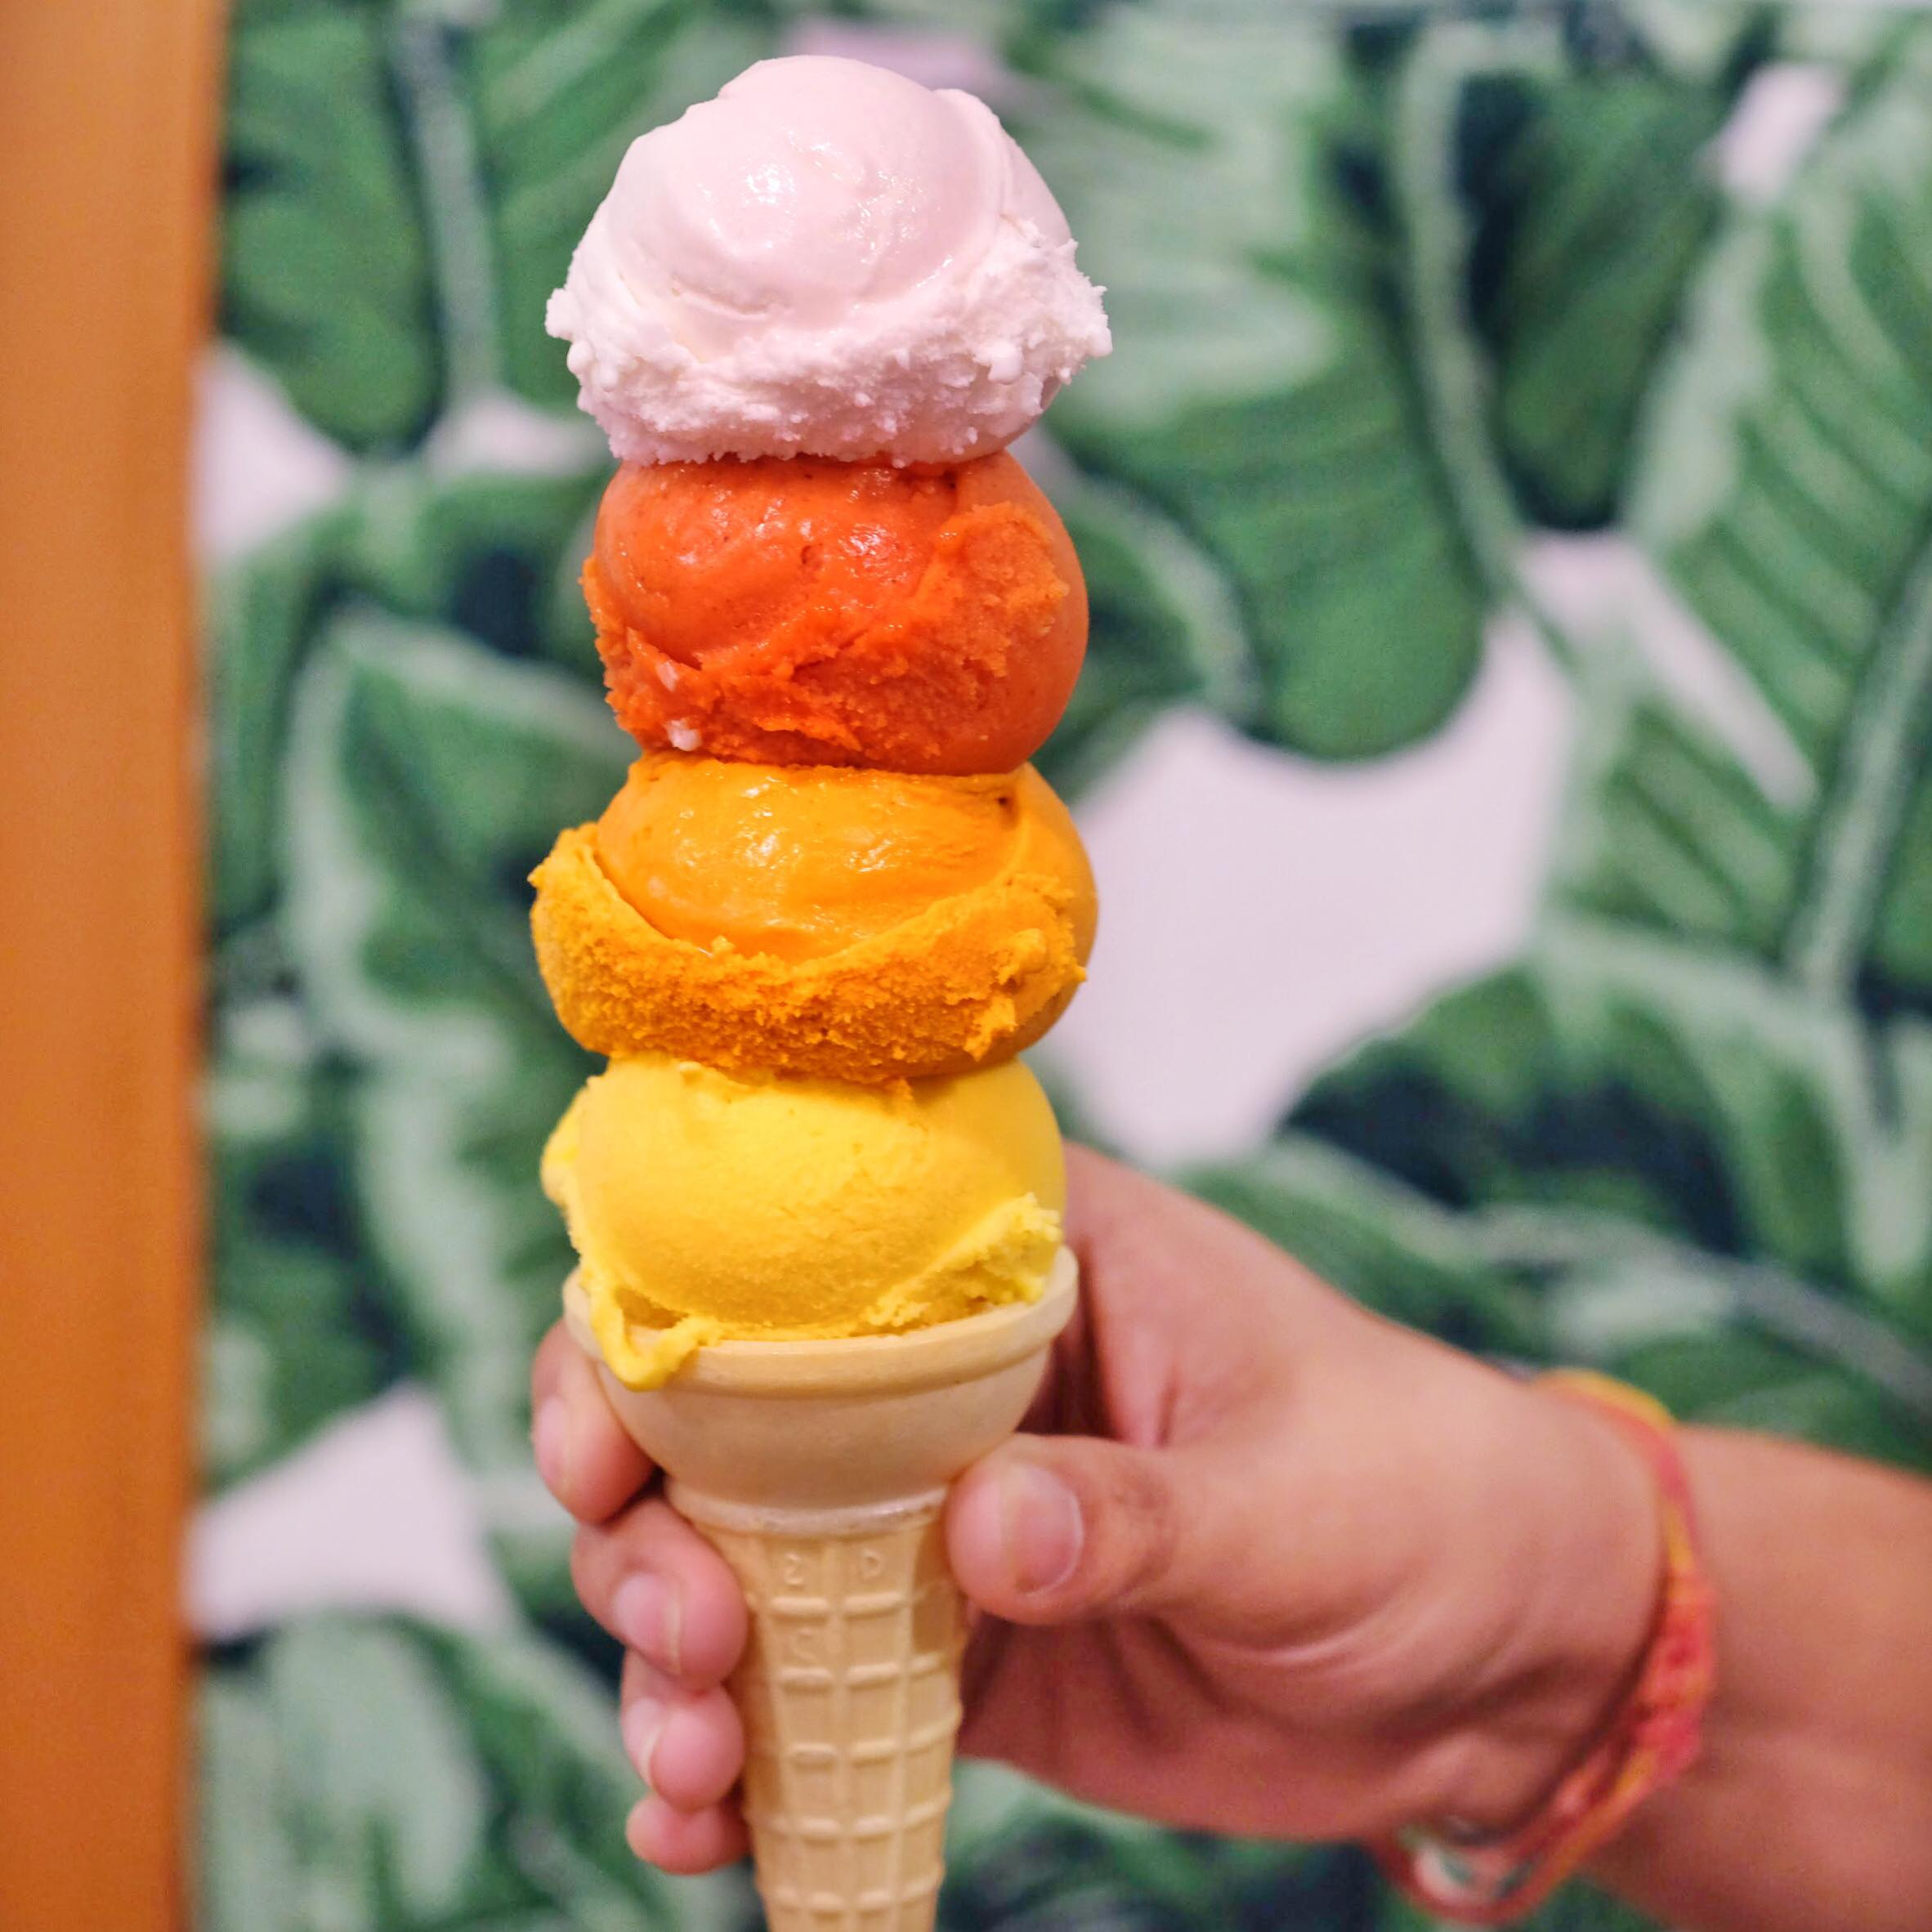 Flavors from top to bottom: coconut, Thai Iced tea, passion fruit, mango sticky rice